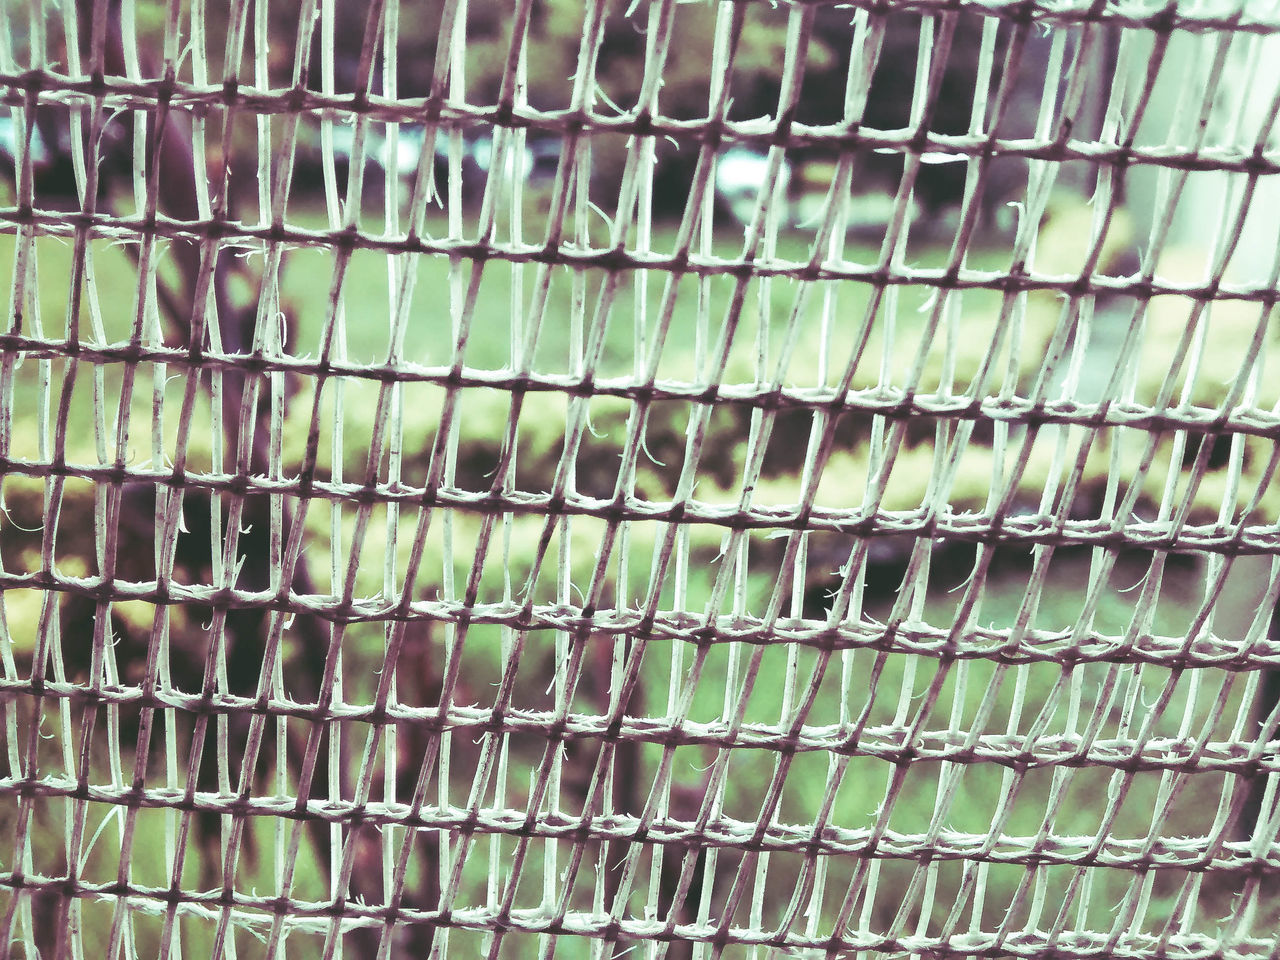 green color, full frame, no people, backgrounds, pattern, cage, close-up, day, outdoors, animal themes, nature, freshness